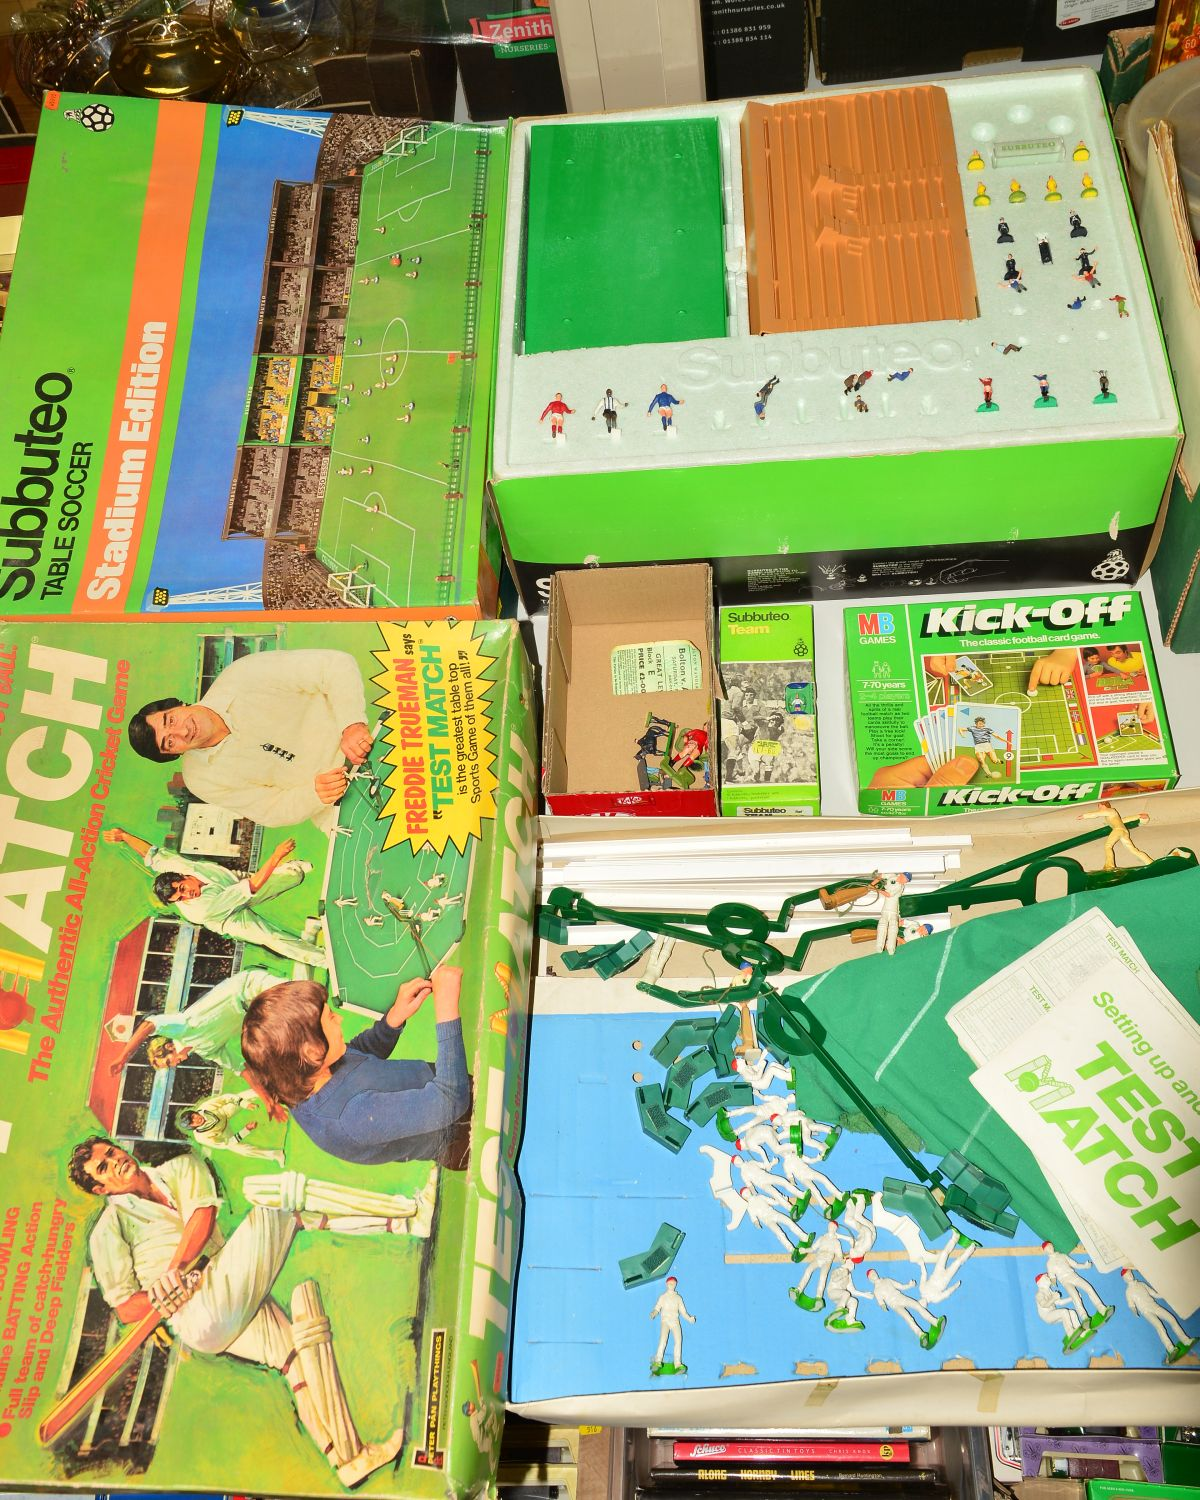 Lot 514 - A BOXED SUBBUTEO STADIUM EDITION SET, from the late 1970's, appears largely complete but is